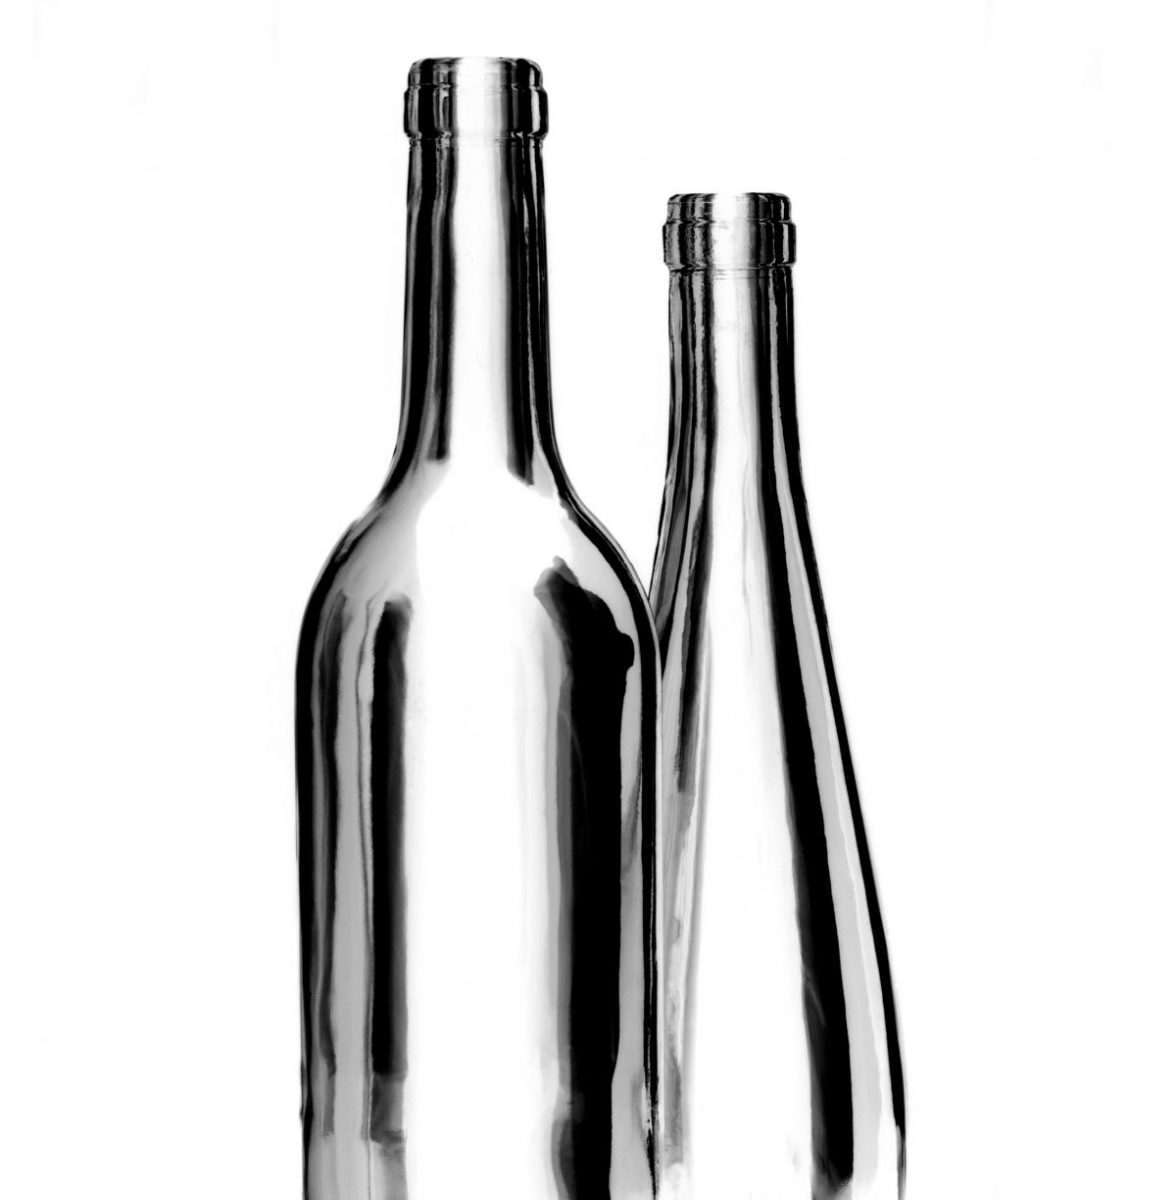 Glass Figures Collection, Man and Wife, Black and White, Bottles, Wine, Vino, Vinho, Botellas, Arte, Limited Edition Prints Marbella